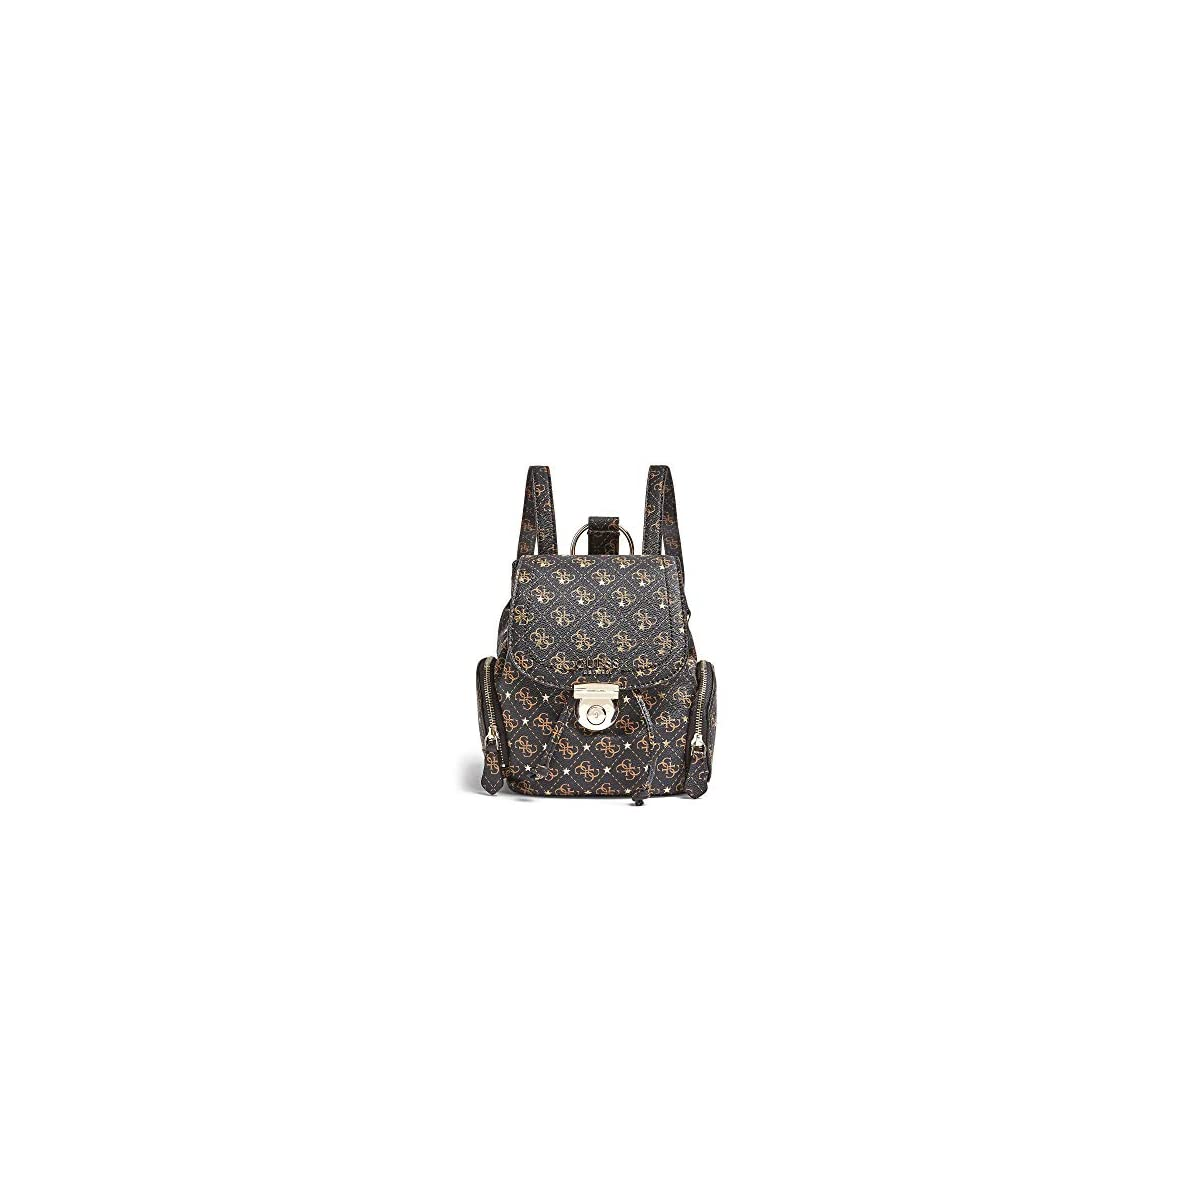 51e4rDMEwnL. SS1200  - Guess AFFAIR SMALL BACKPACK